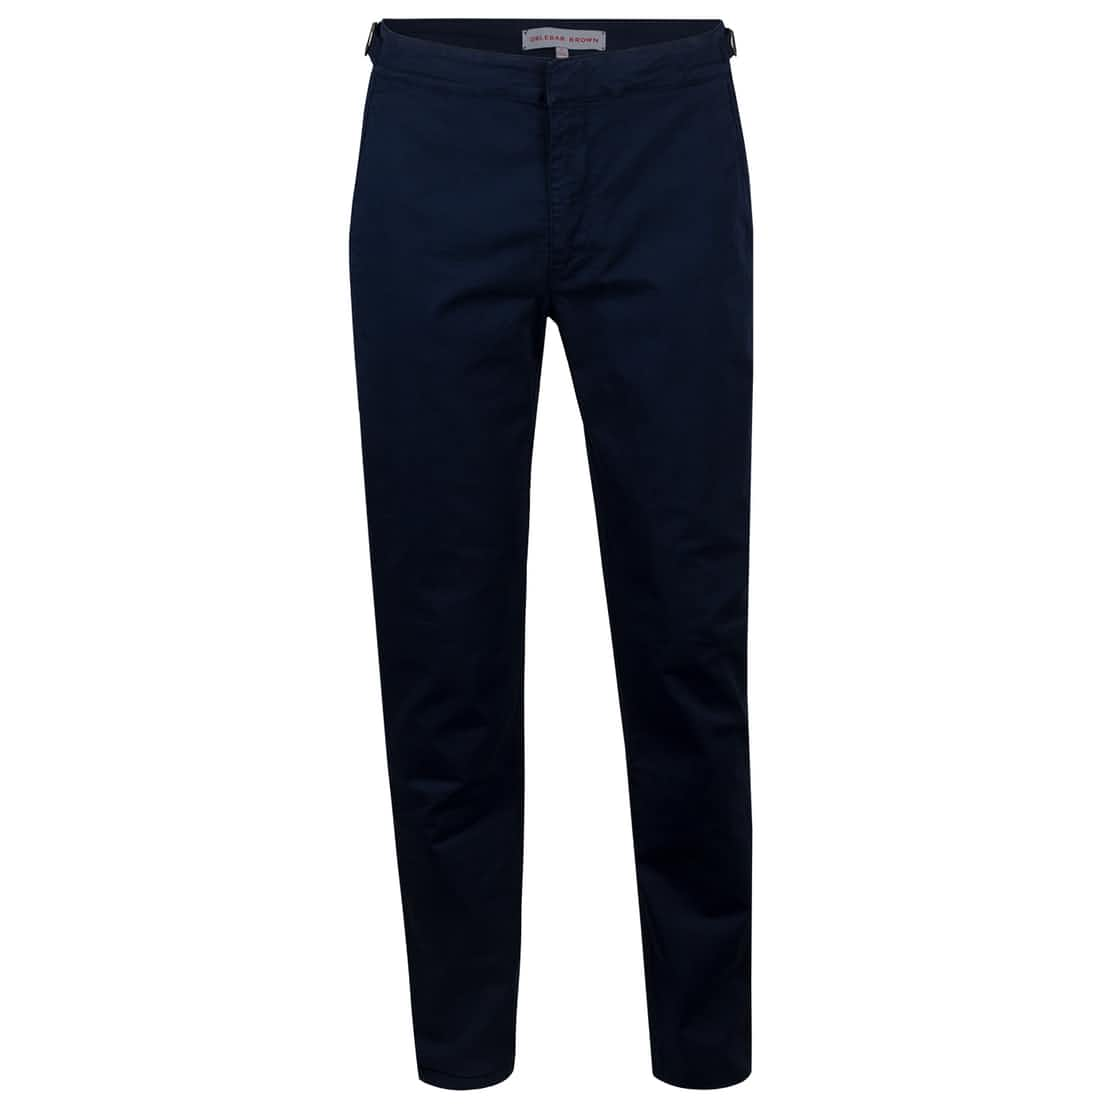 Campbell Slim Chino Navy - 2020